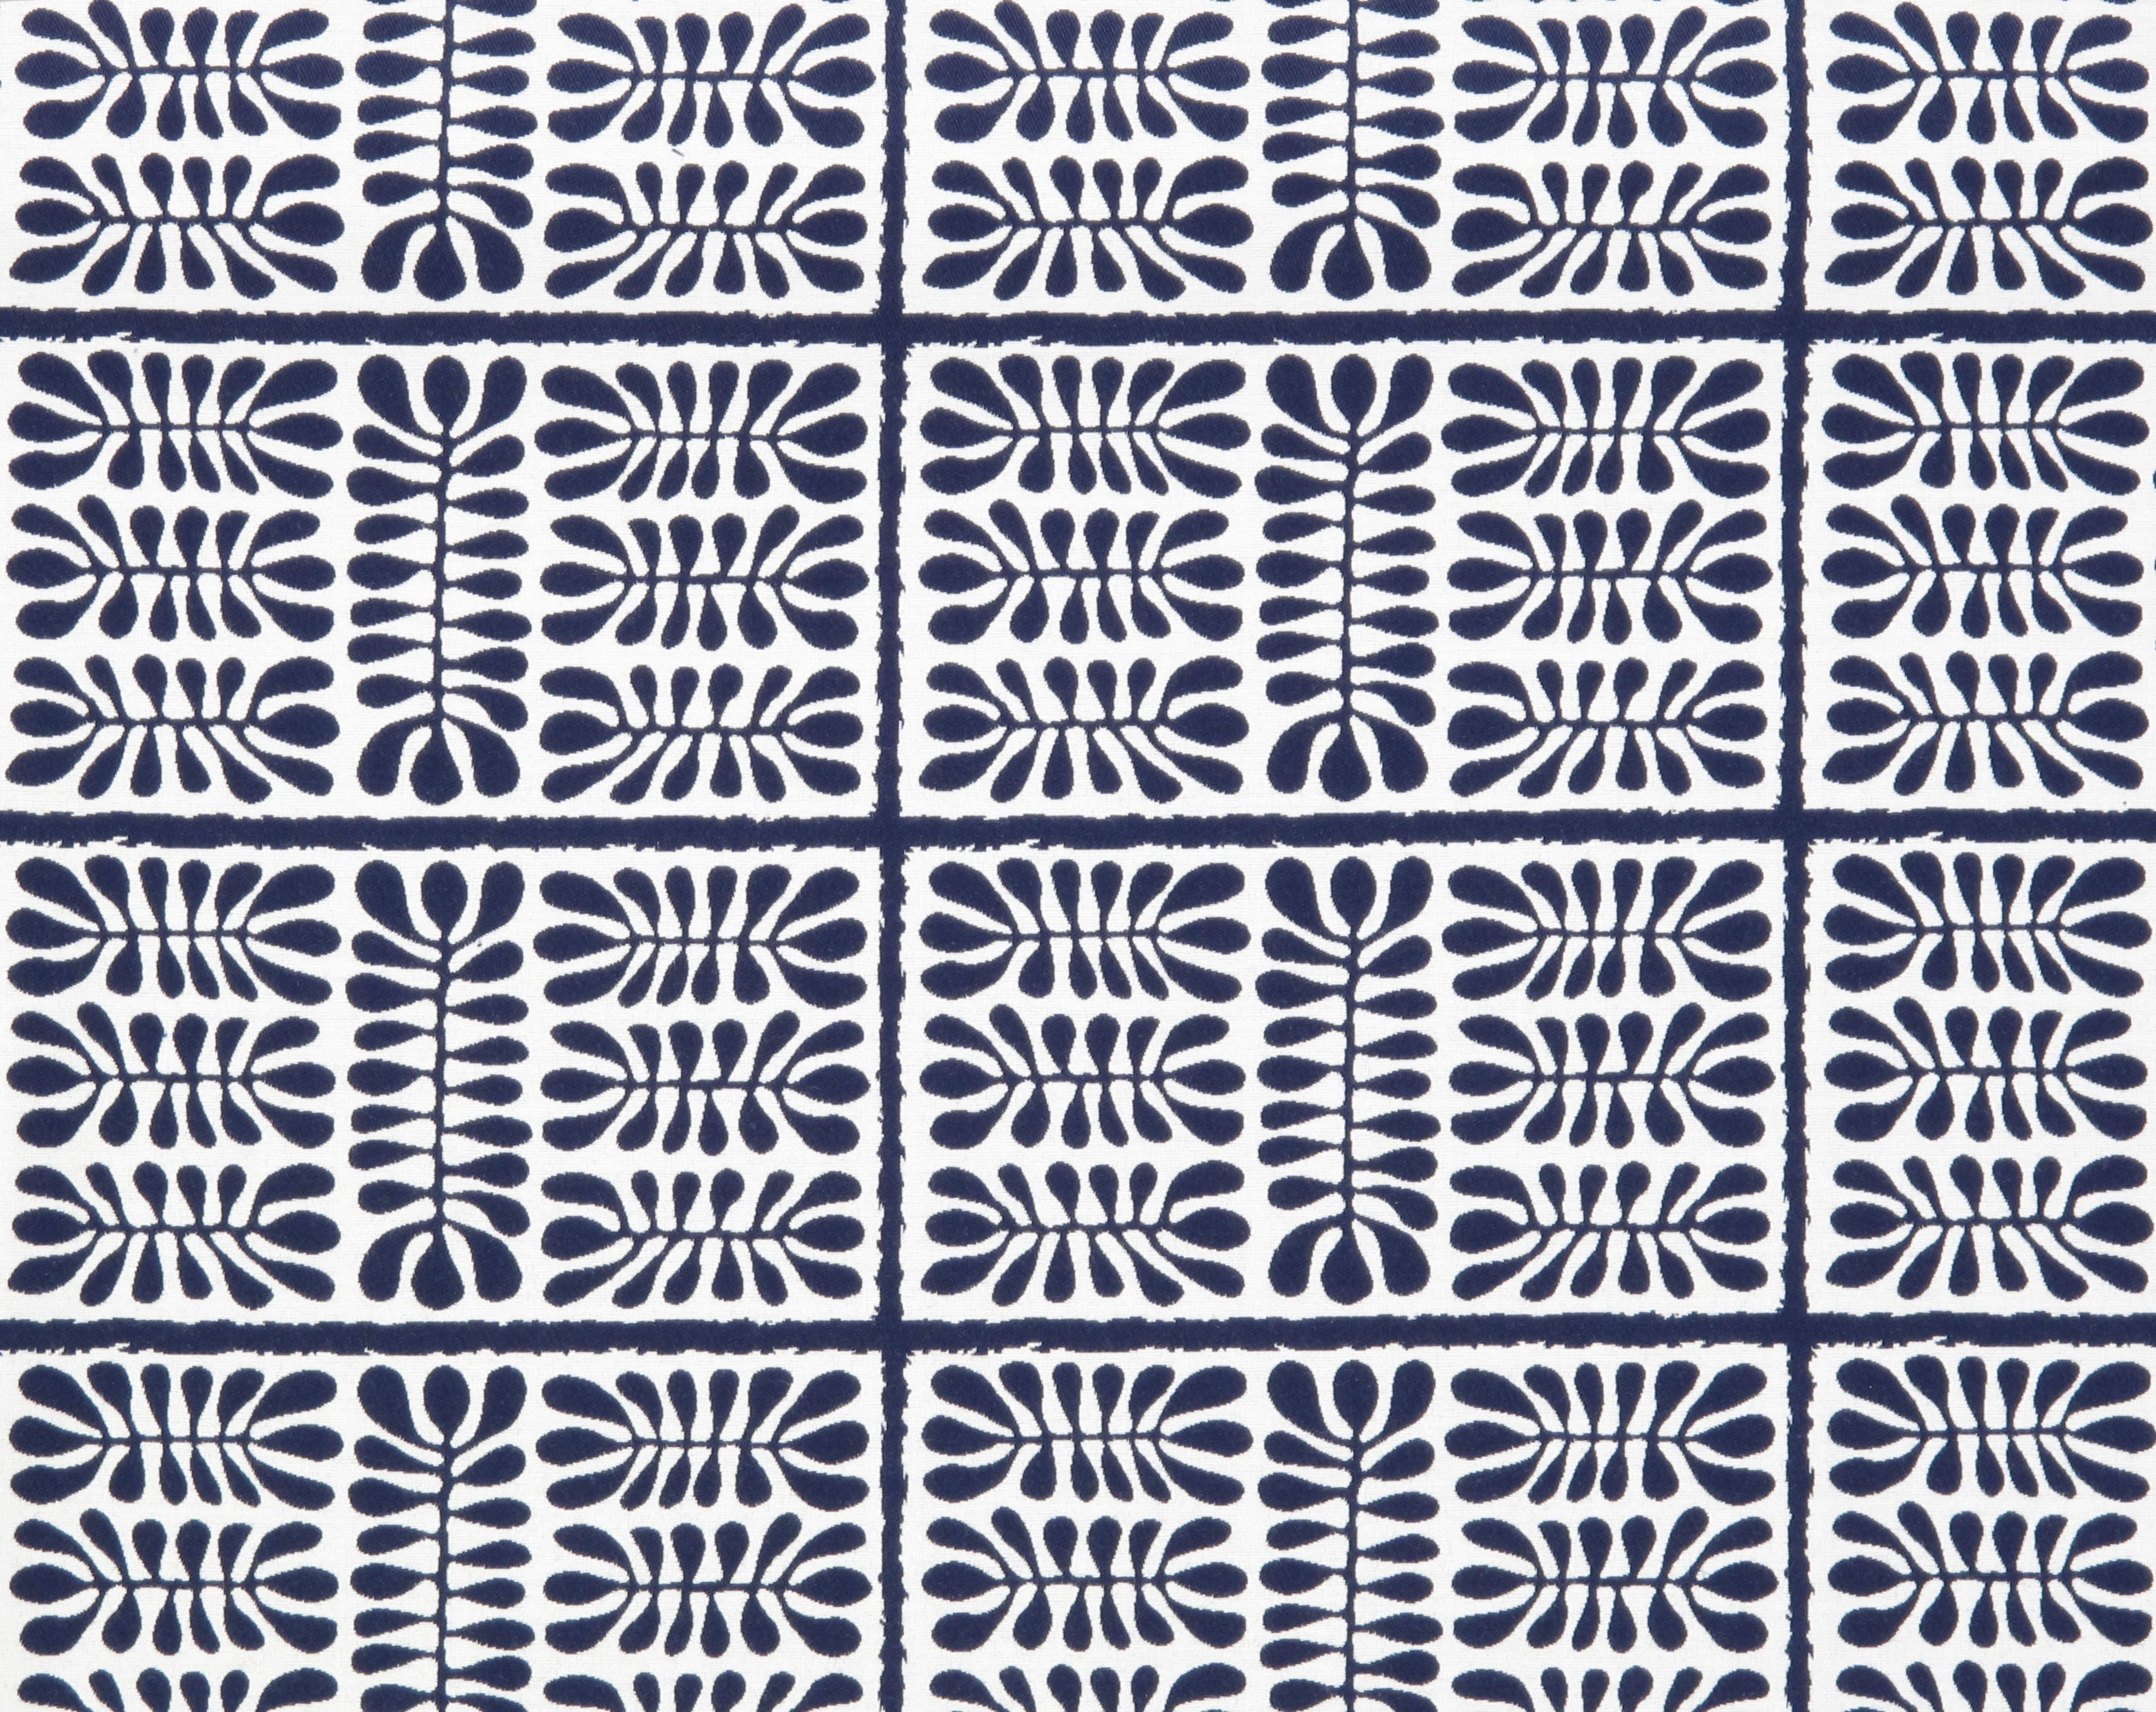 Dancing Matisse in Navy Blue from Old World Weavers/Stark